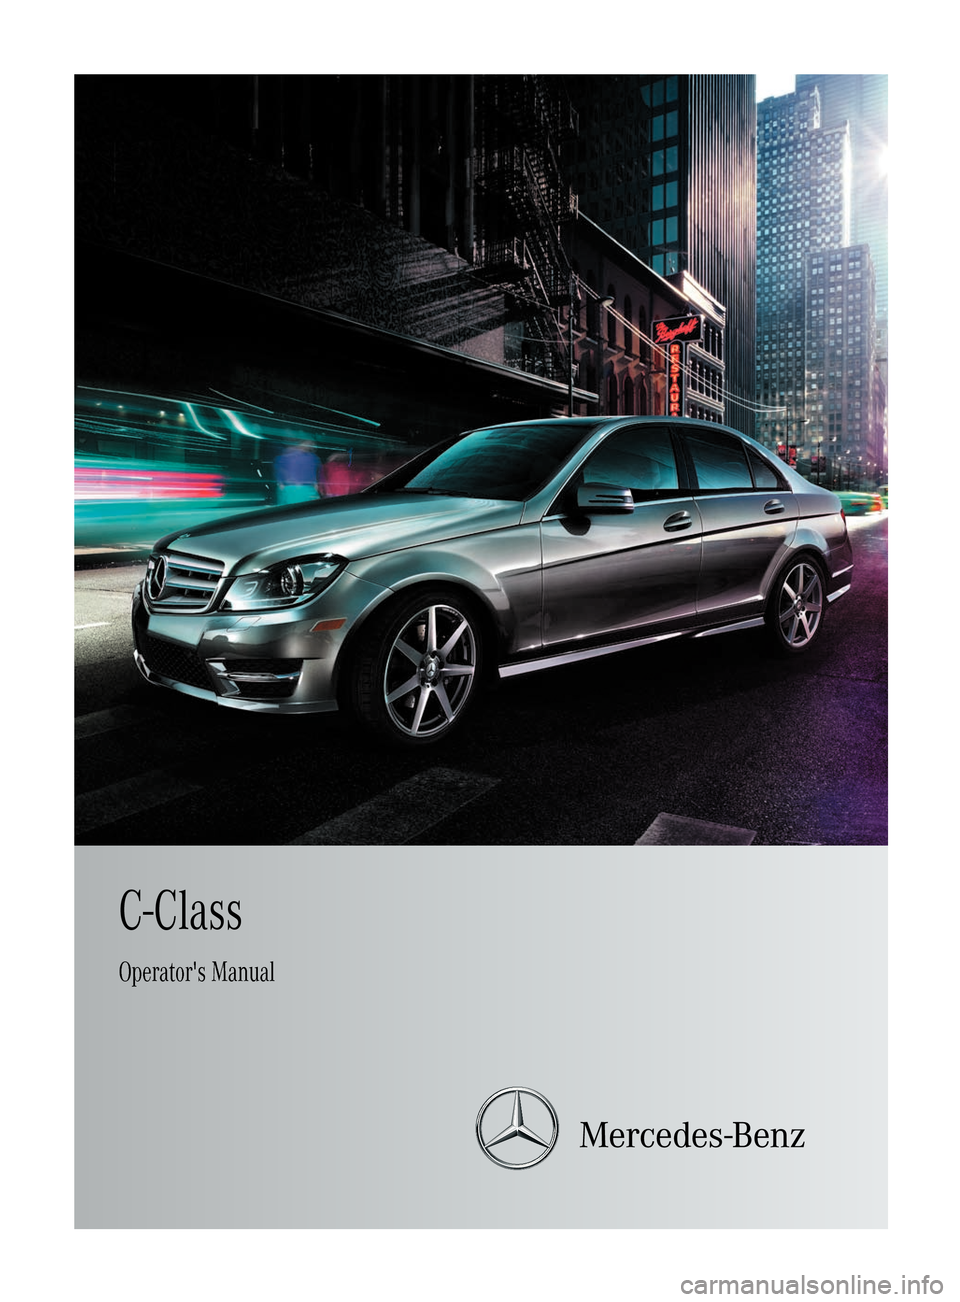 Mercedes benz c class sedan 2012 w204 owner 39 s manual for Mercedes benz online repair manual